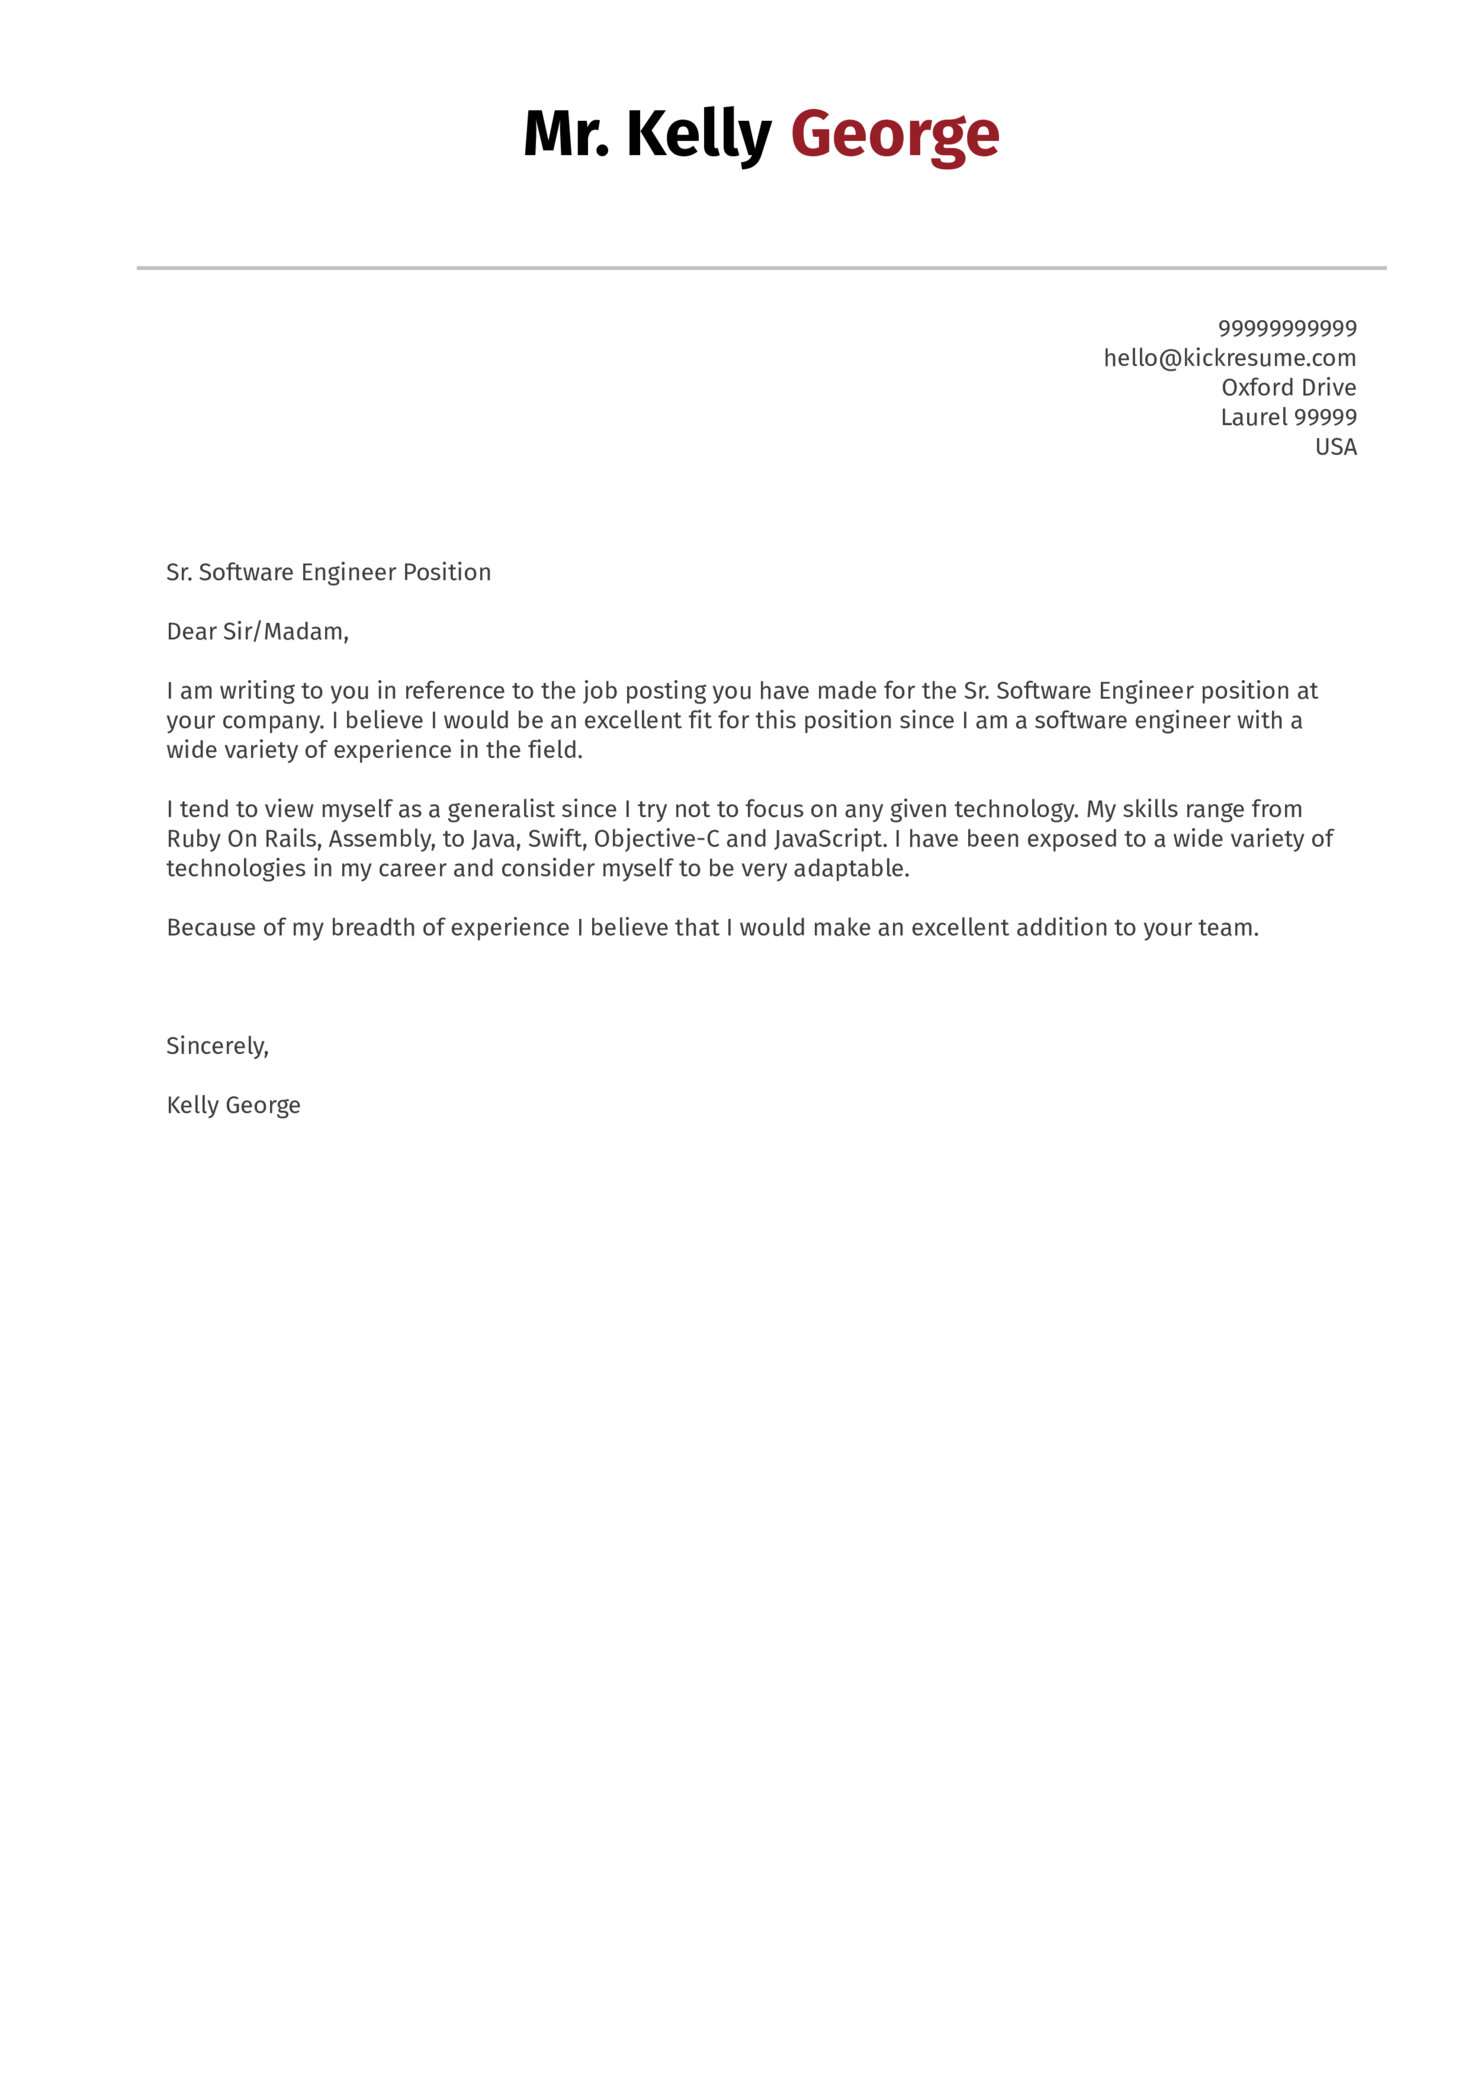 Cover Letter Examples by Real People Senior software engineer cover letter sample  Kickresume